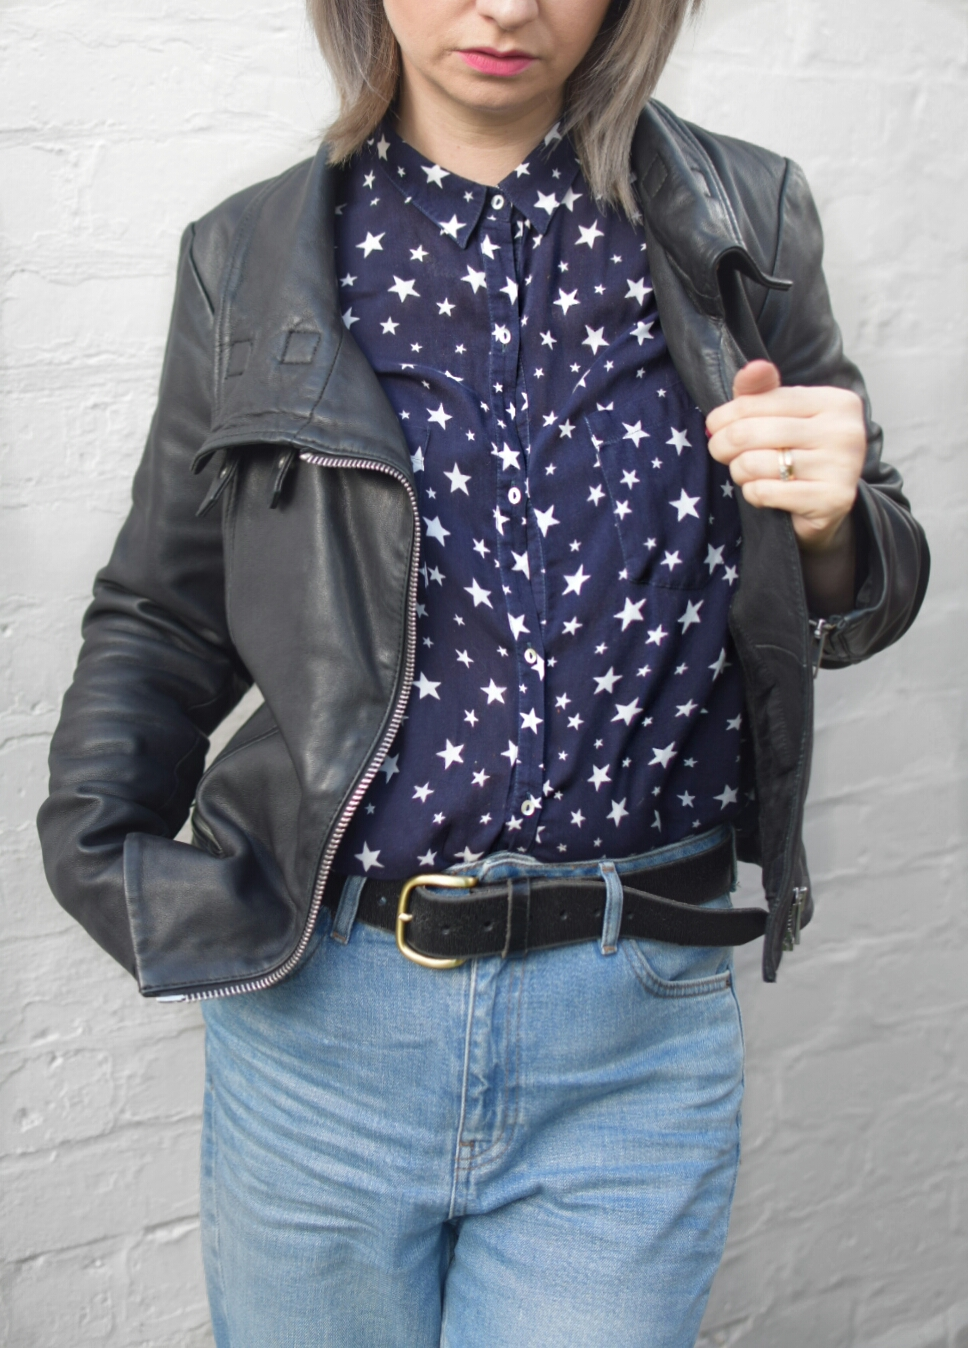 All Saints Bales Leather Jacket, Topshop MOM highwaisted Jeans and Zara Star Shirt